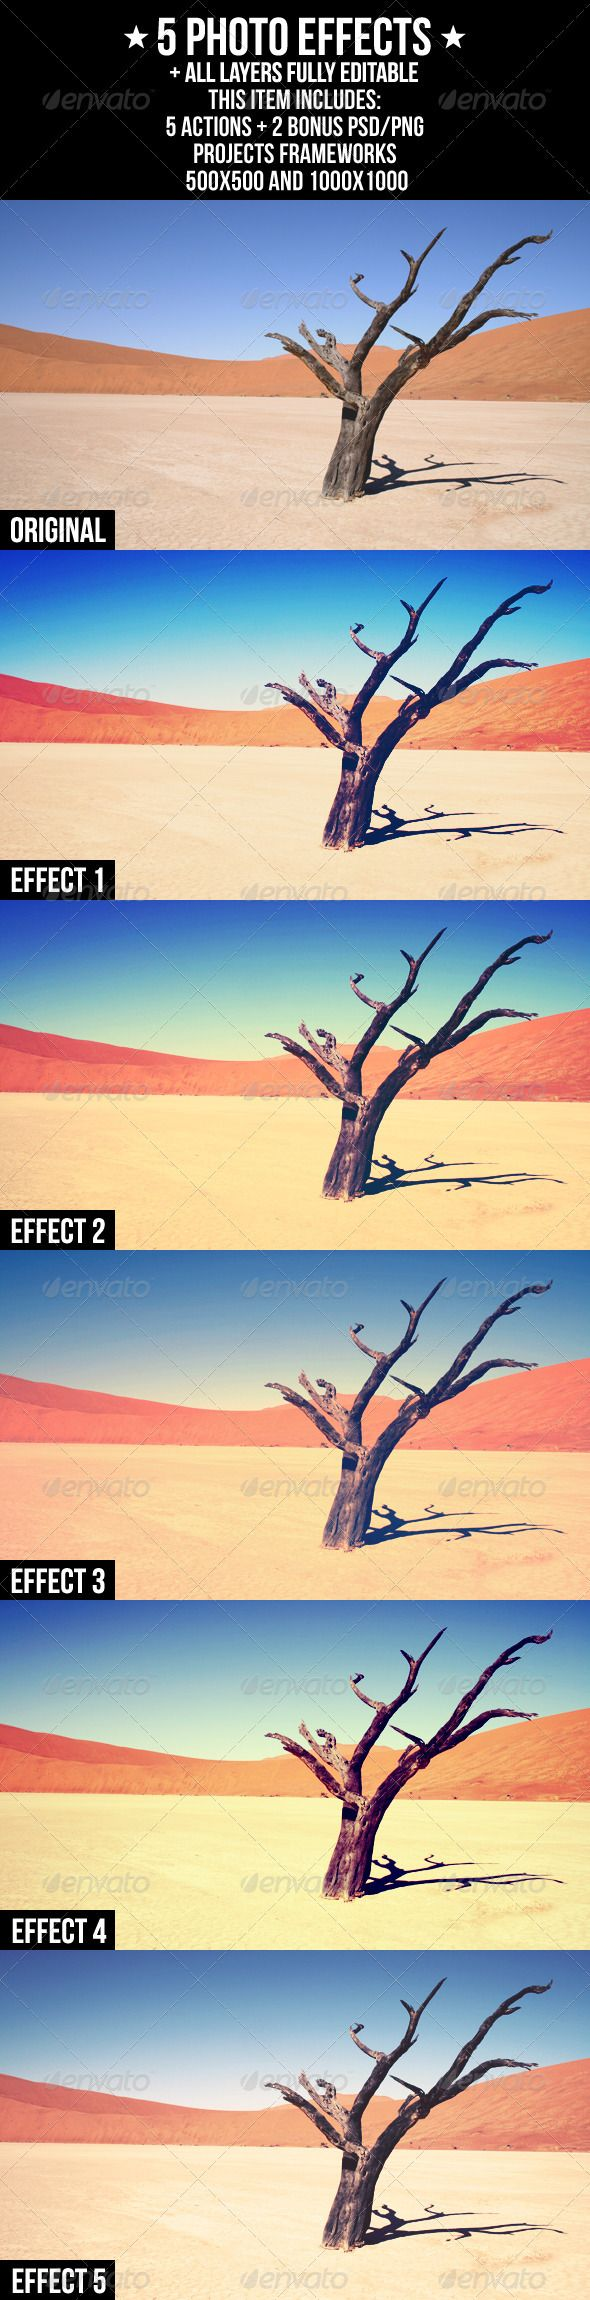 5 Photo Effects